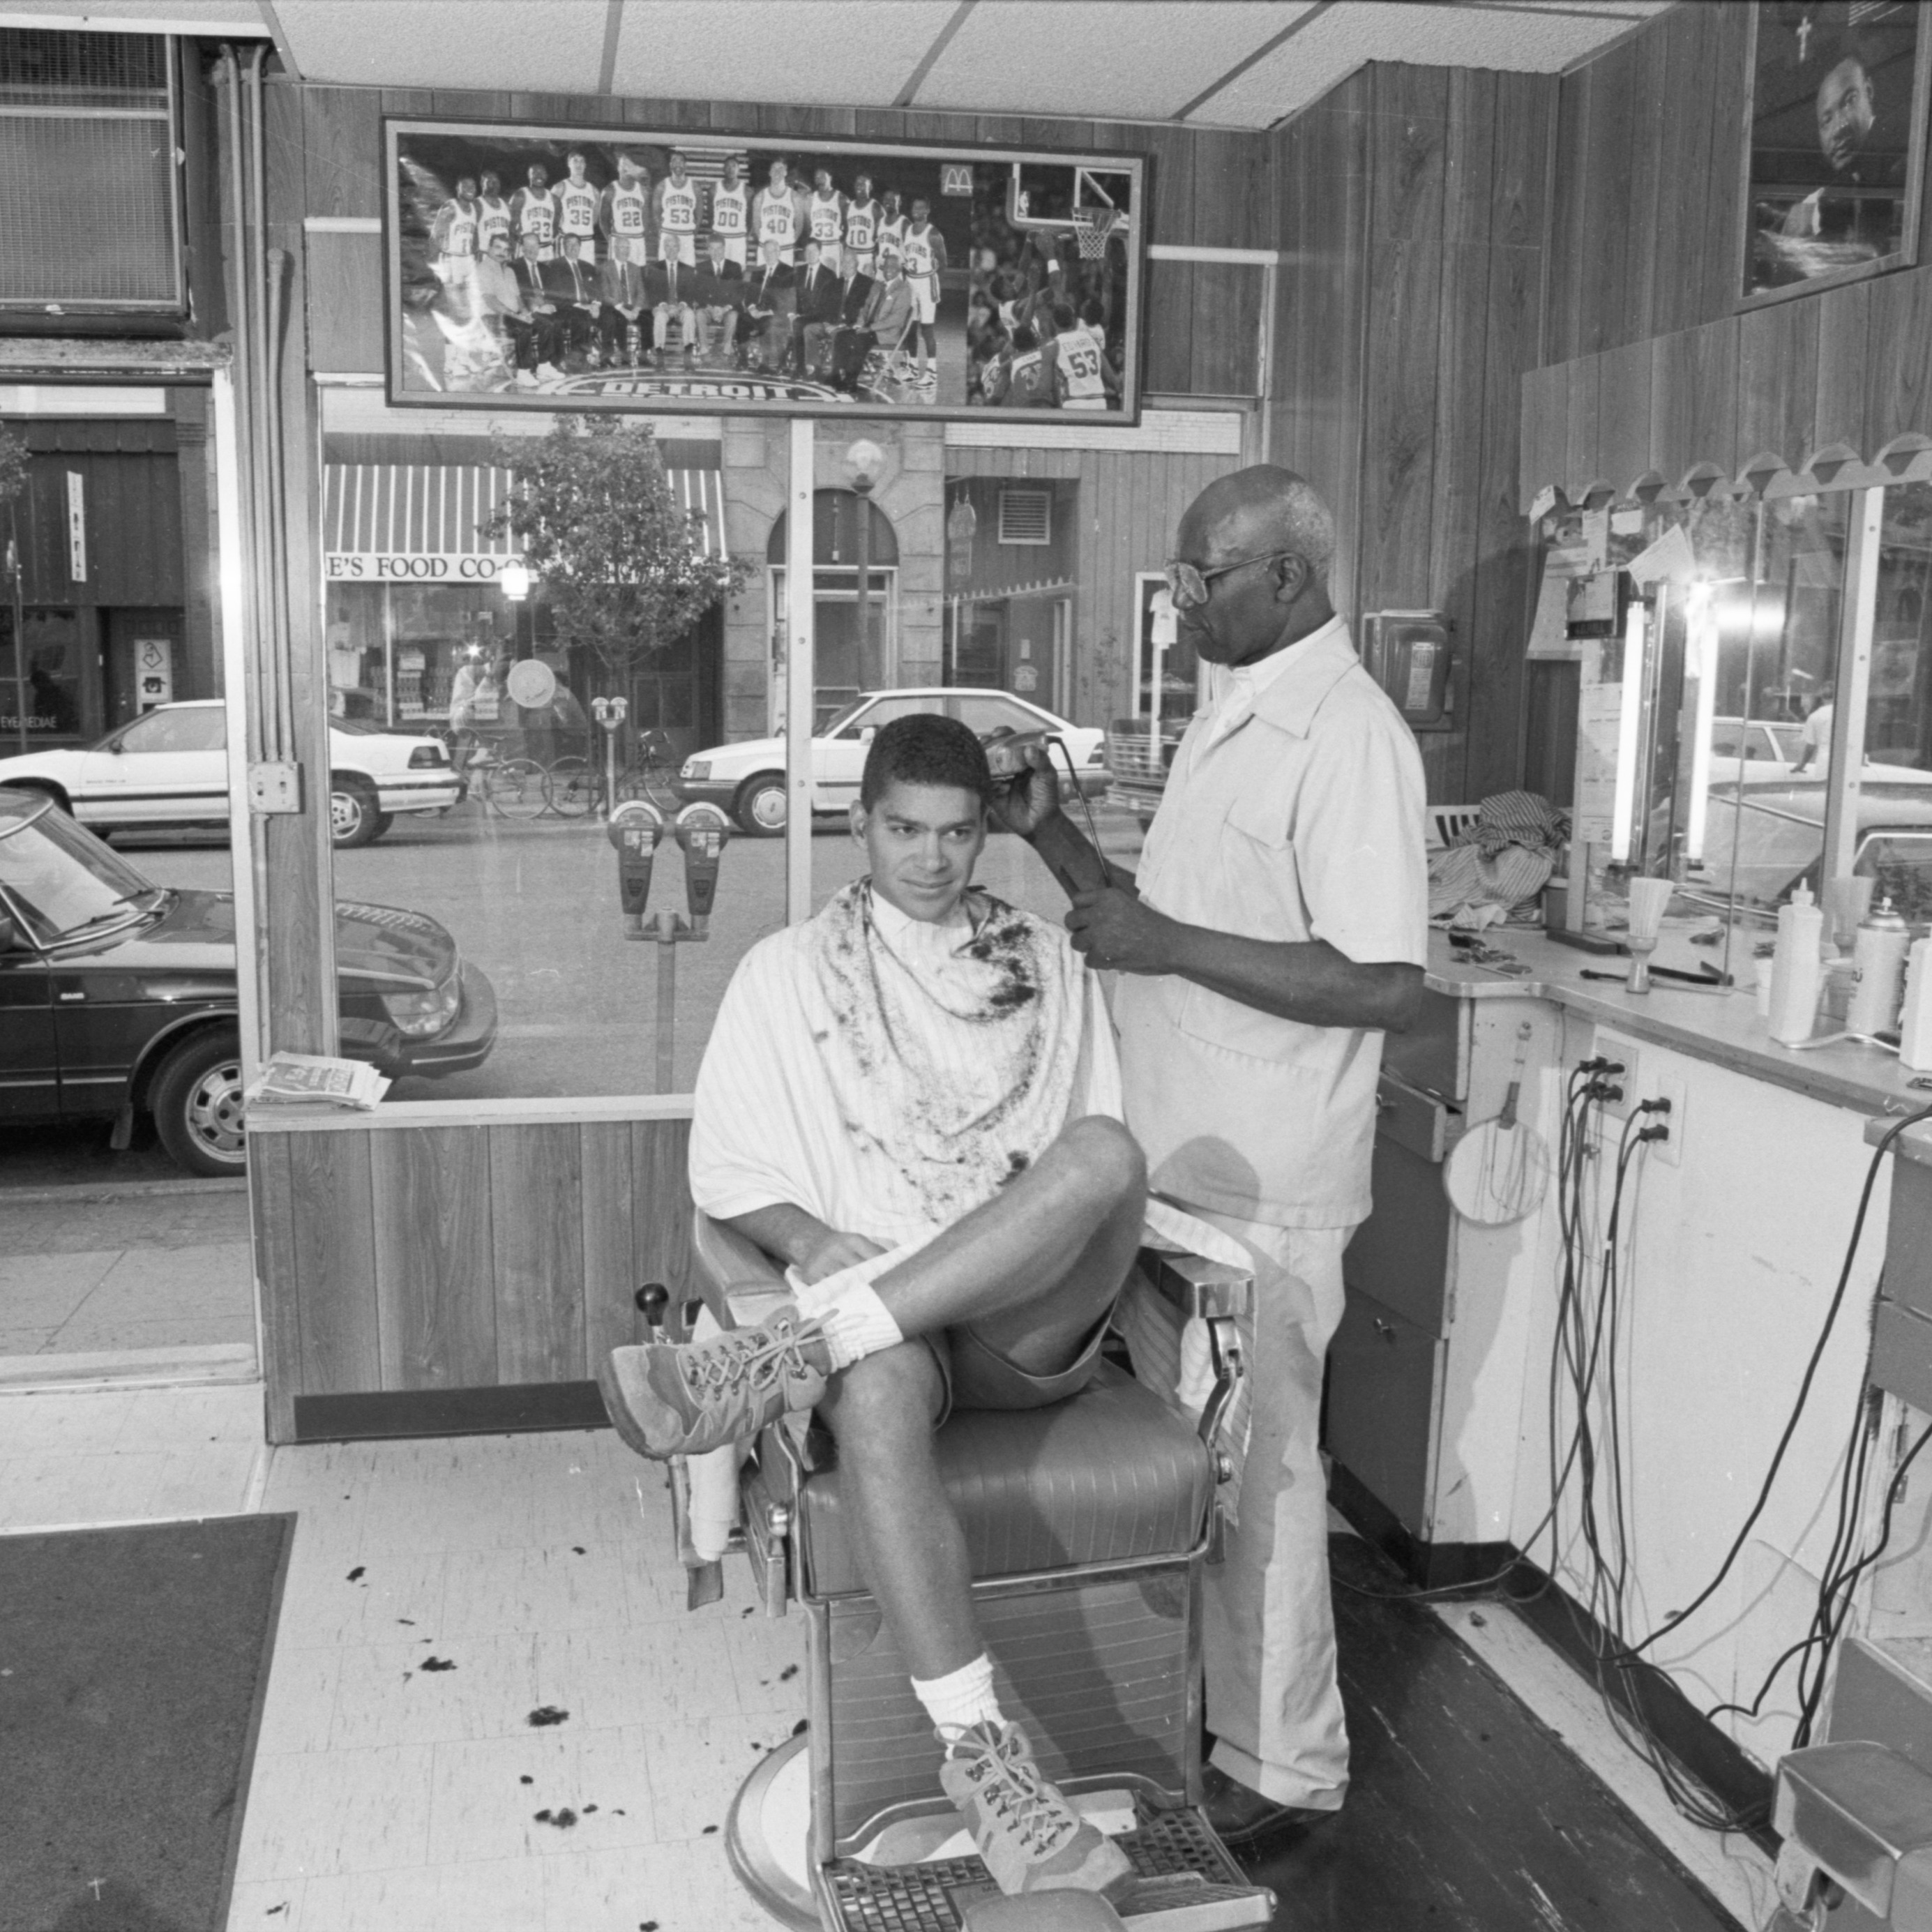 Barber J.D. Hall cuts a client's hair